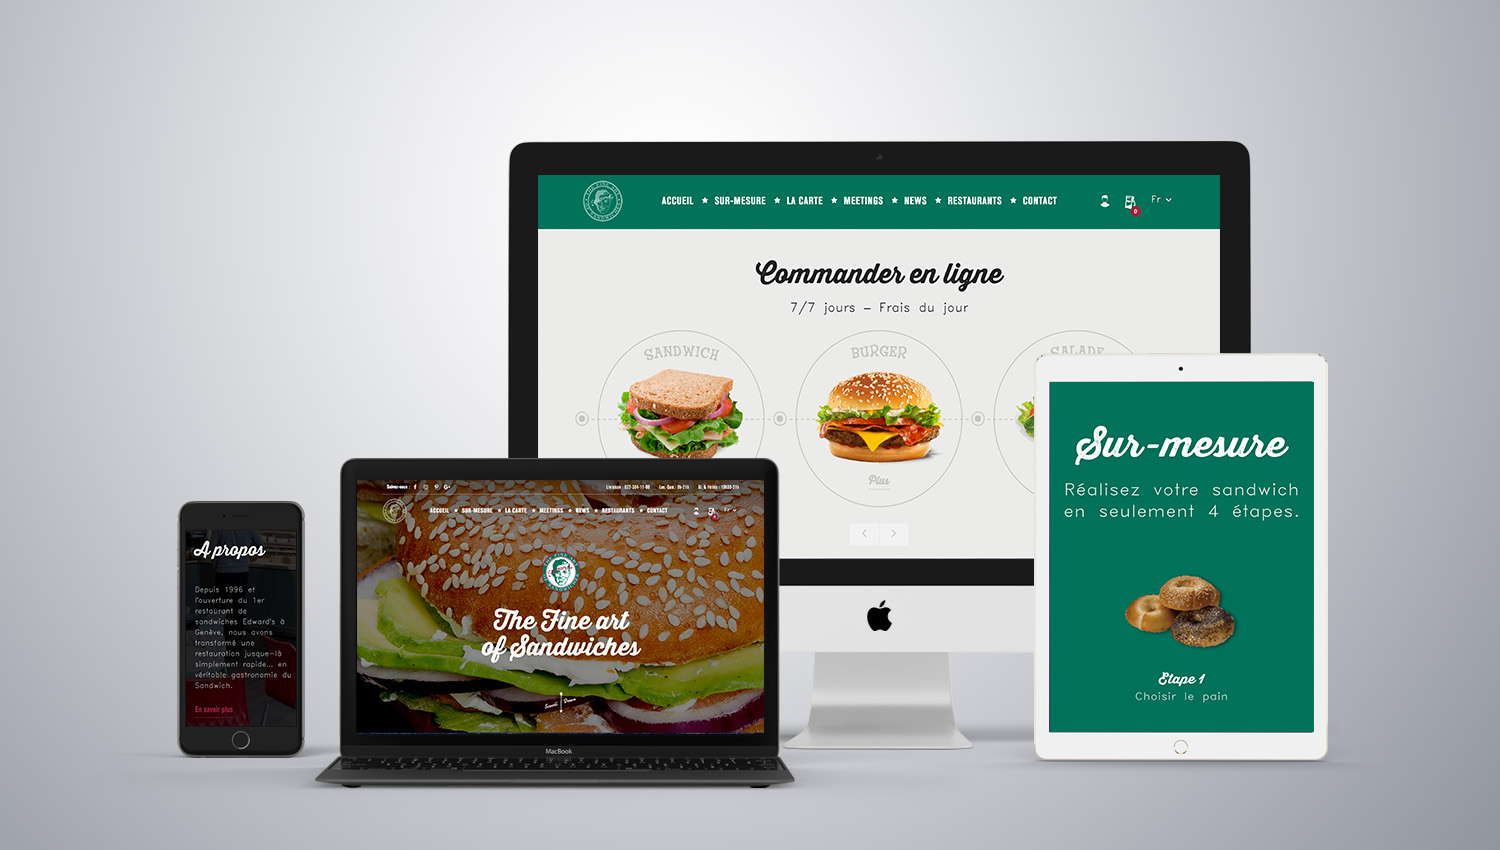 Web design desktop view for Edwards Sandwiches 1 by 8 Ways